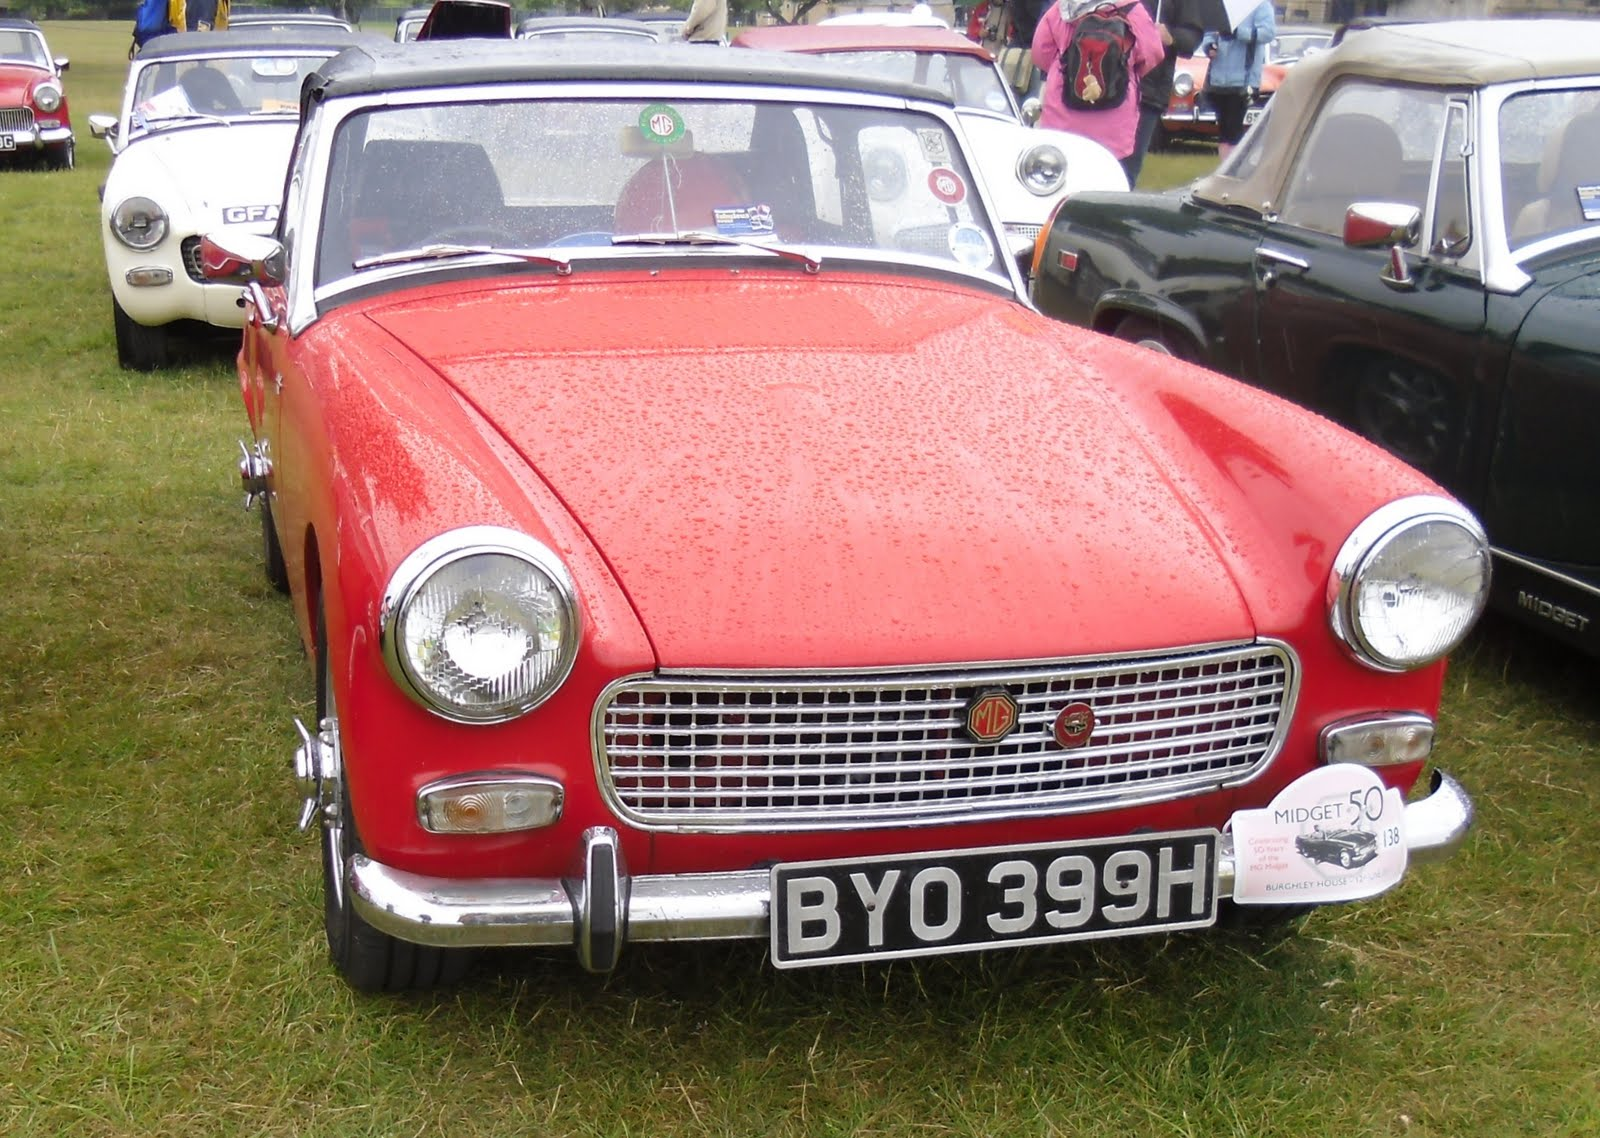 Mg midget mark iv diagram, wicca porn